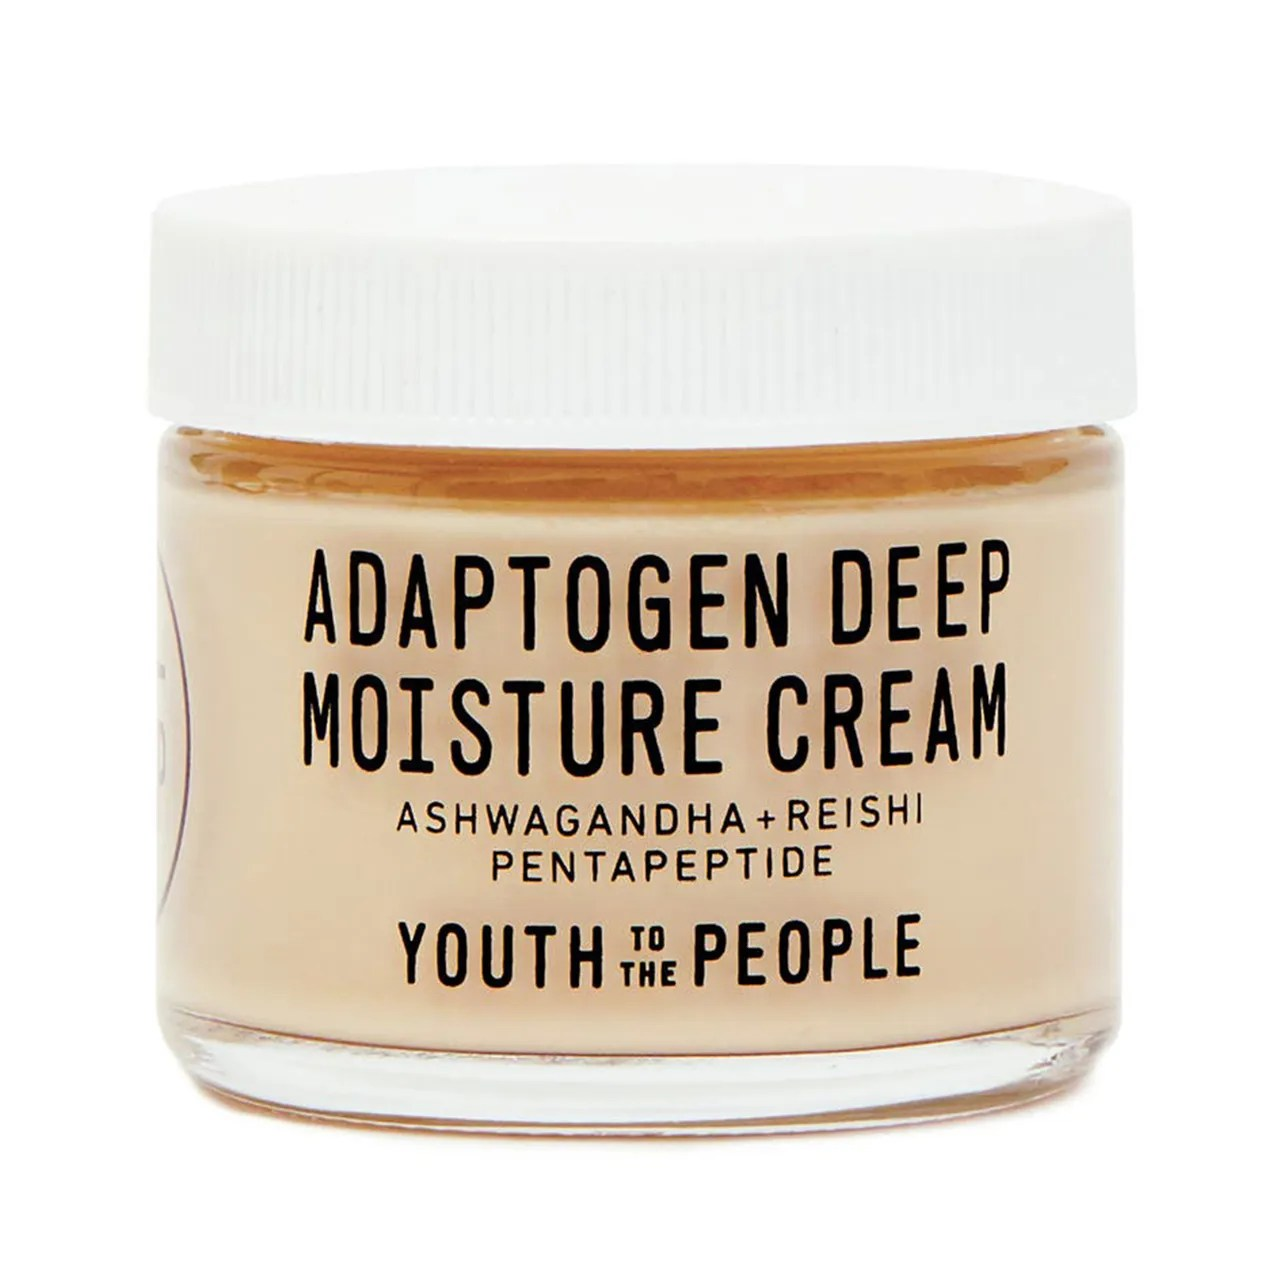 Youth to the People Adaptogen Deep Moisture Cream on white background